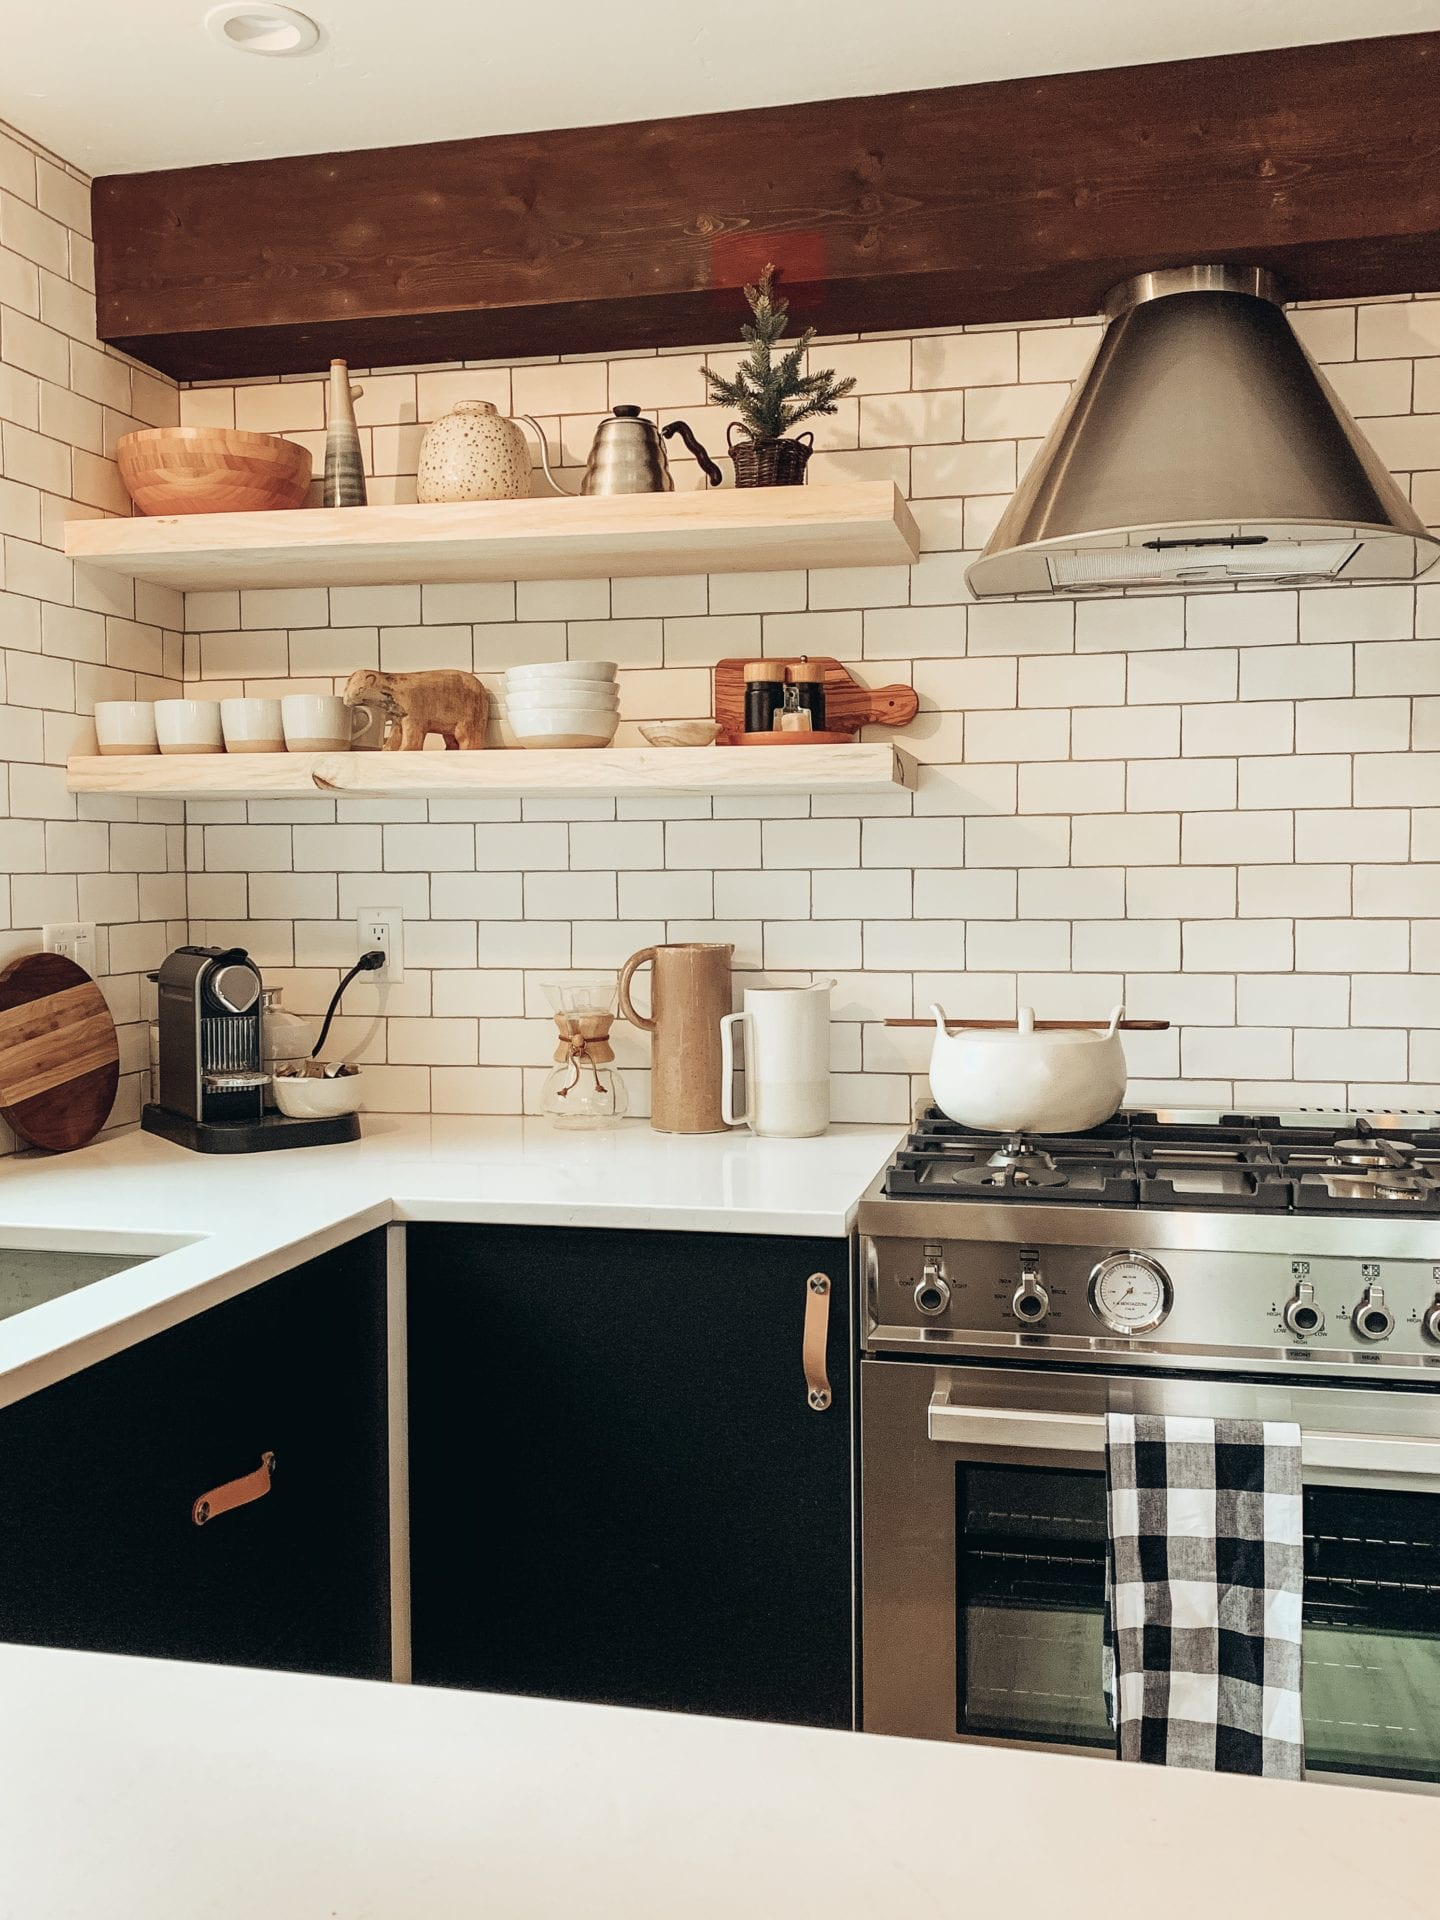 Pantry Meals by popular lifestyle blog, Just Add Glam: image of a kitchen with black cabinets, subway title back splash, floating shelves, and gas cooking range.